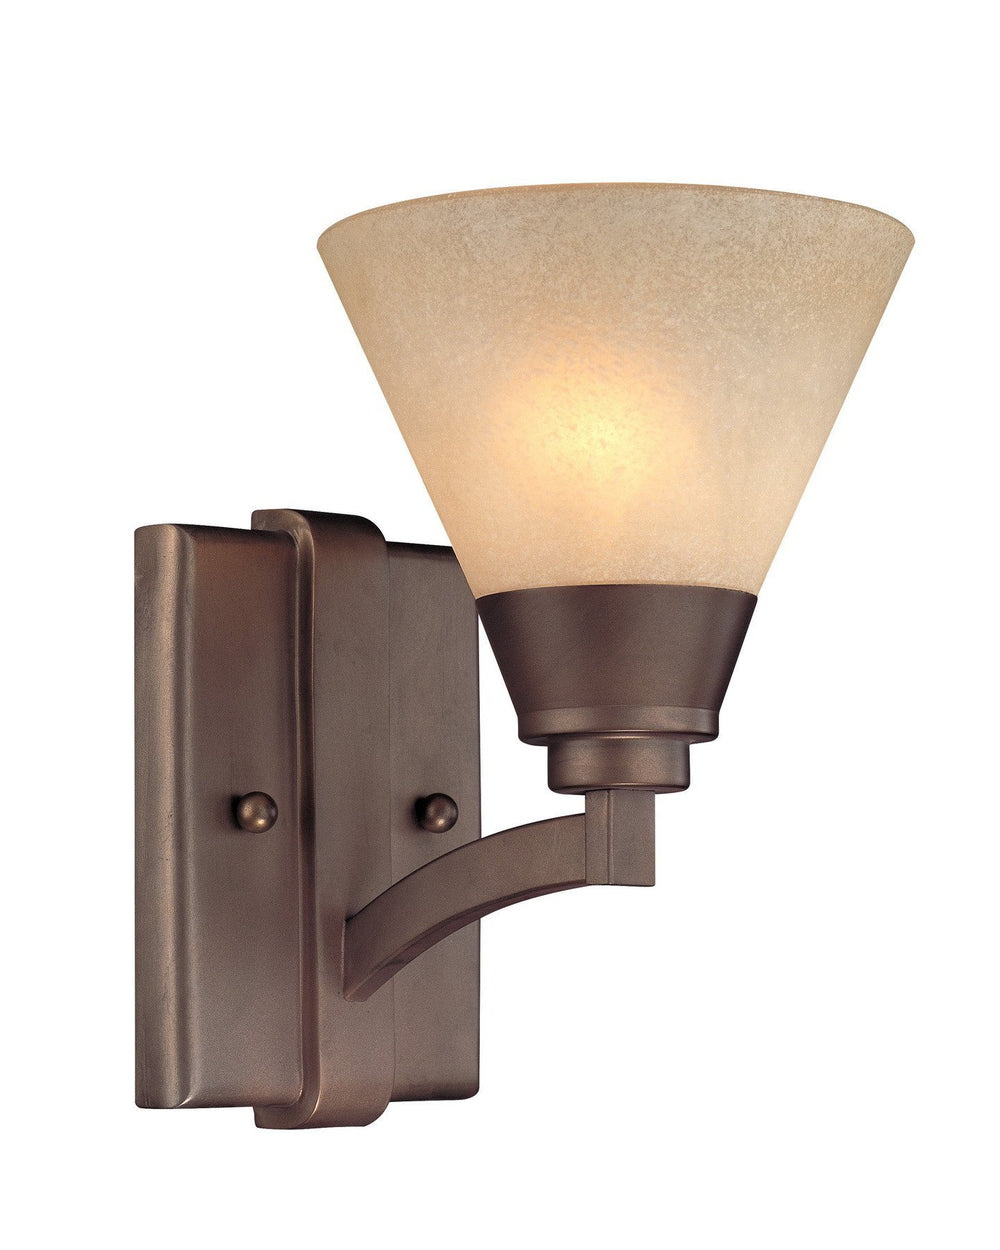 1066-206 Dolan Designs Covina Wall Sconce Classic Bronze